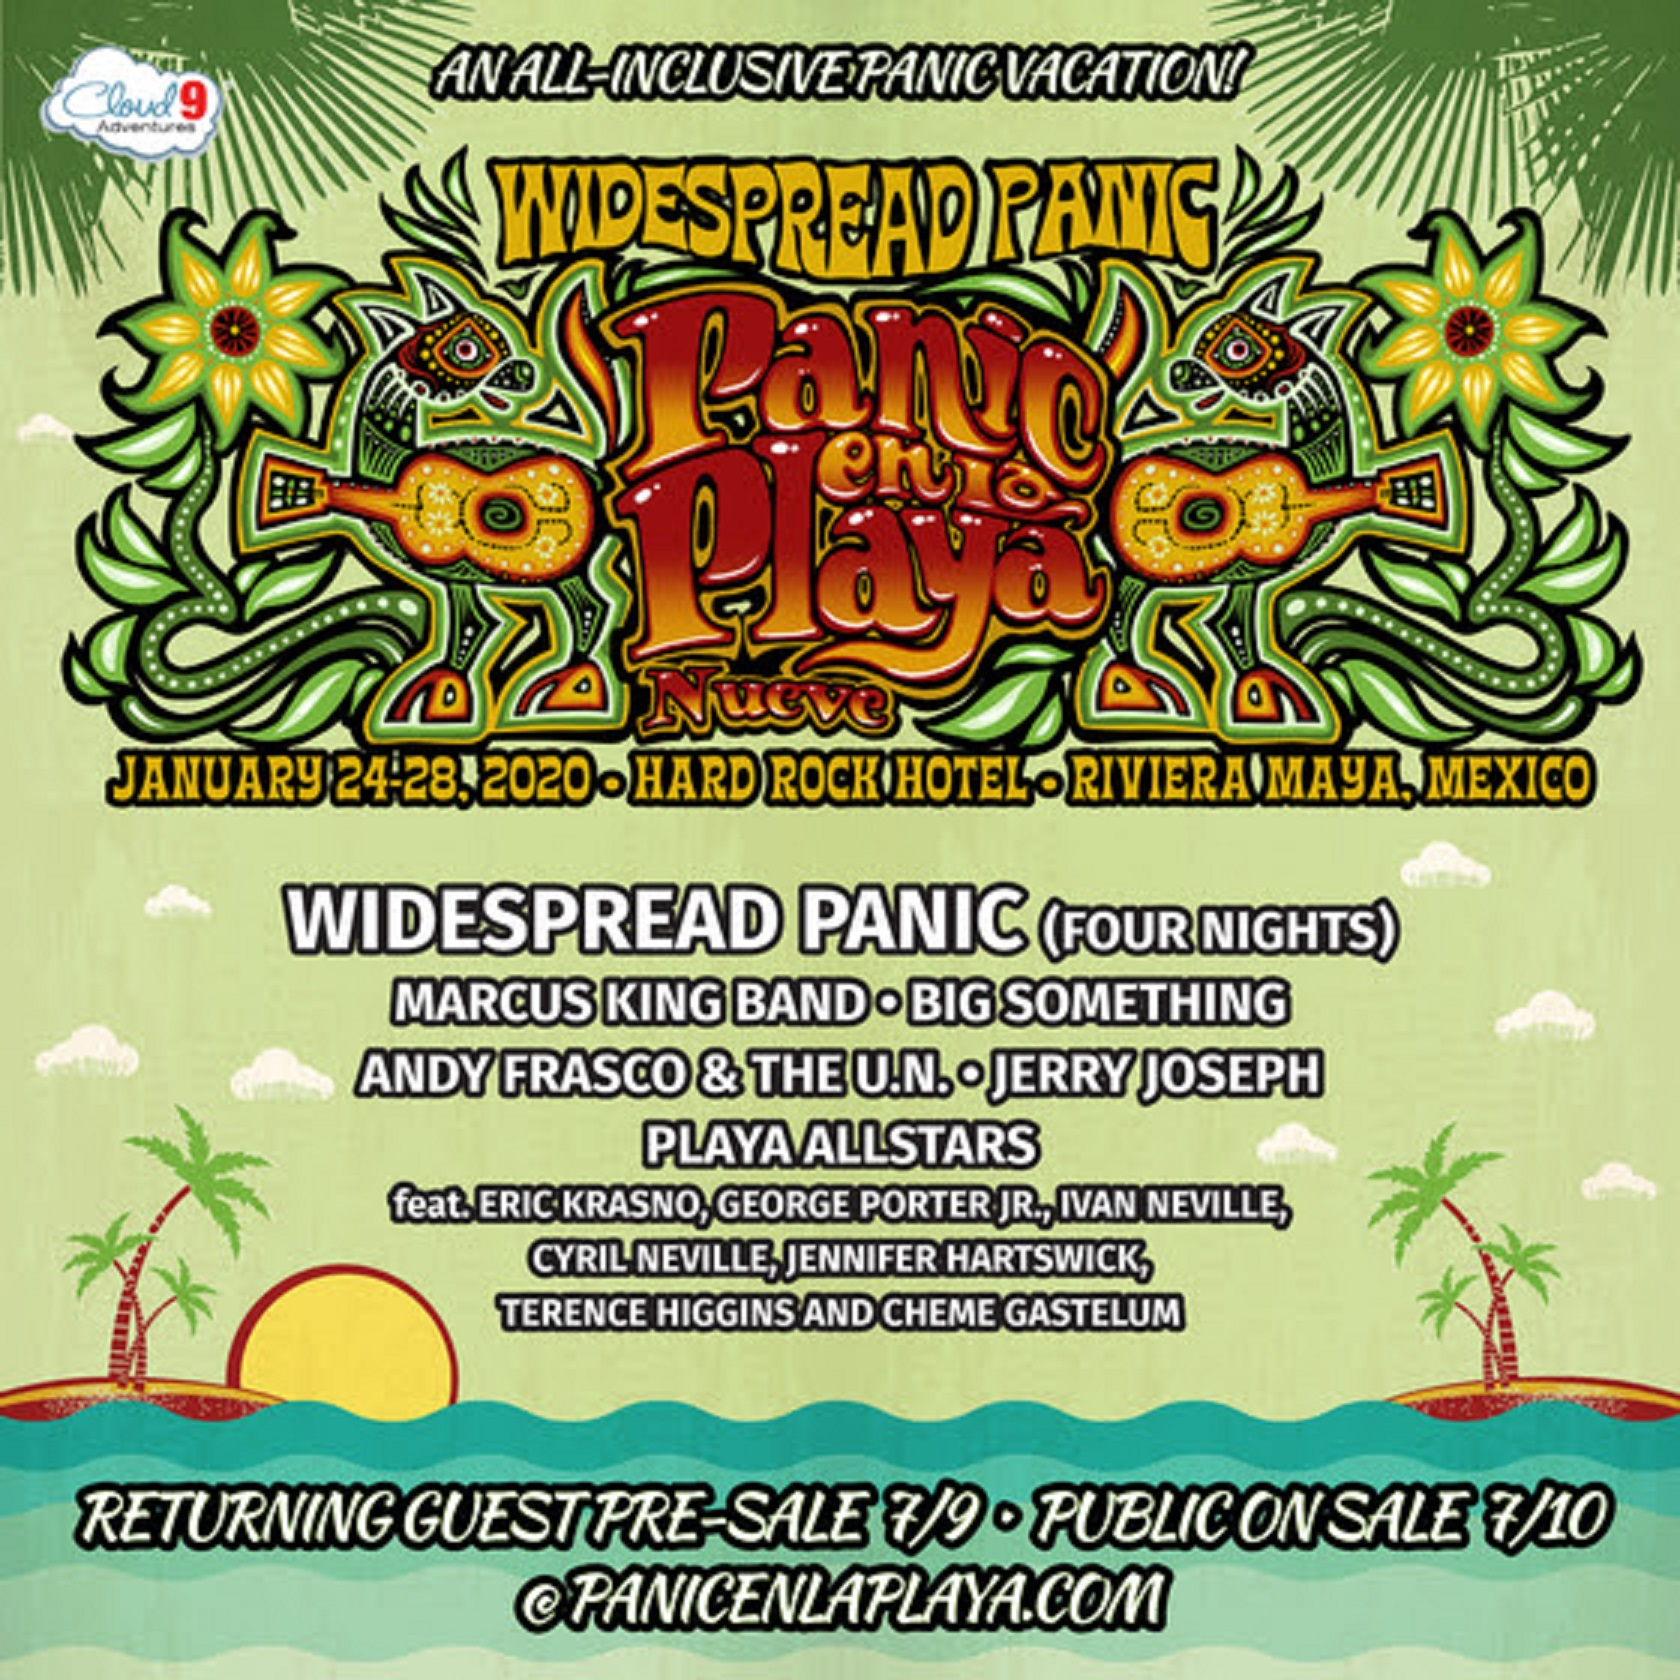 Widespread Panic Announces Panic En La Playa Nueve January 24–28